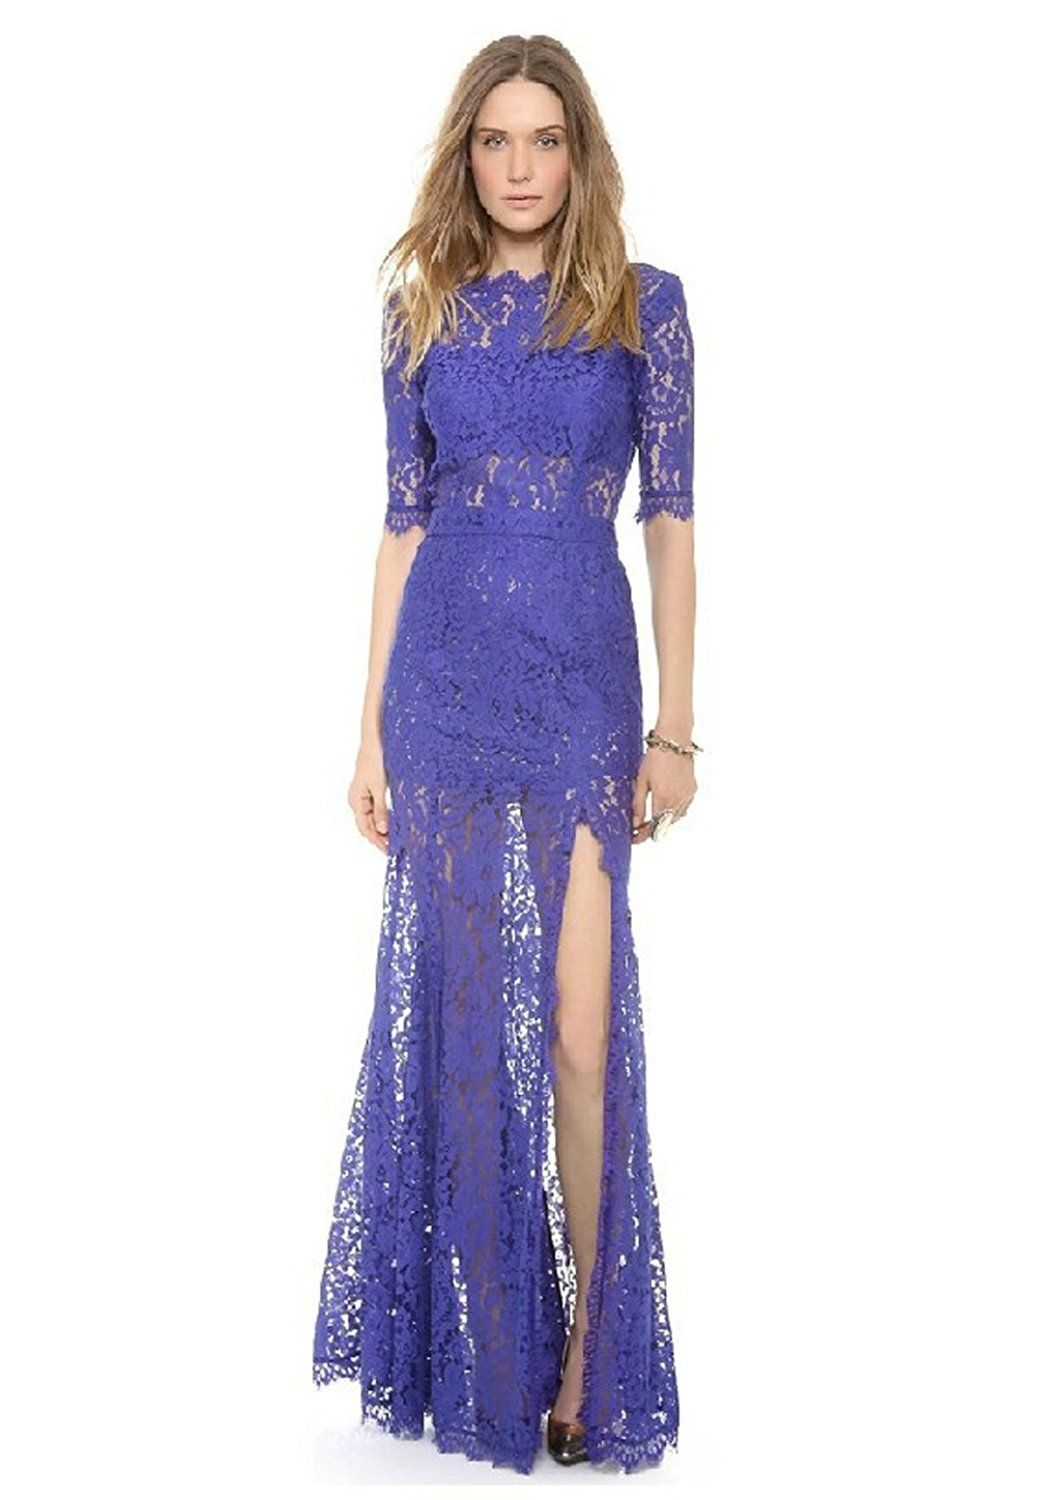 Charm life womenus long dress lace party dress want to know more